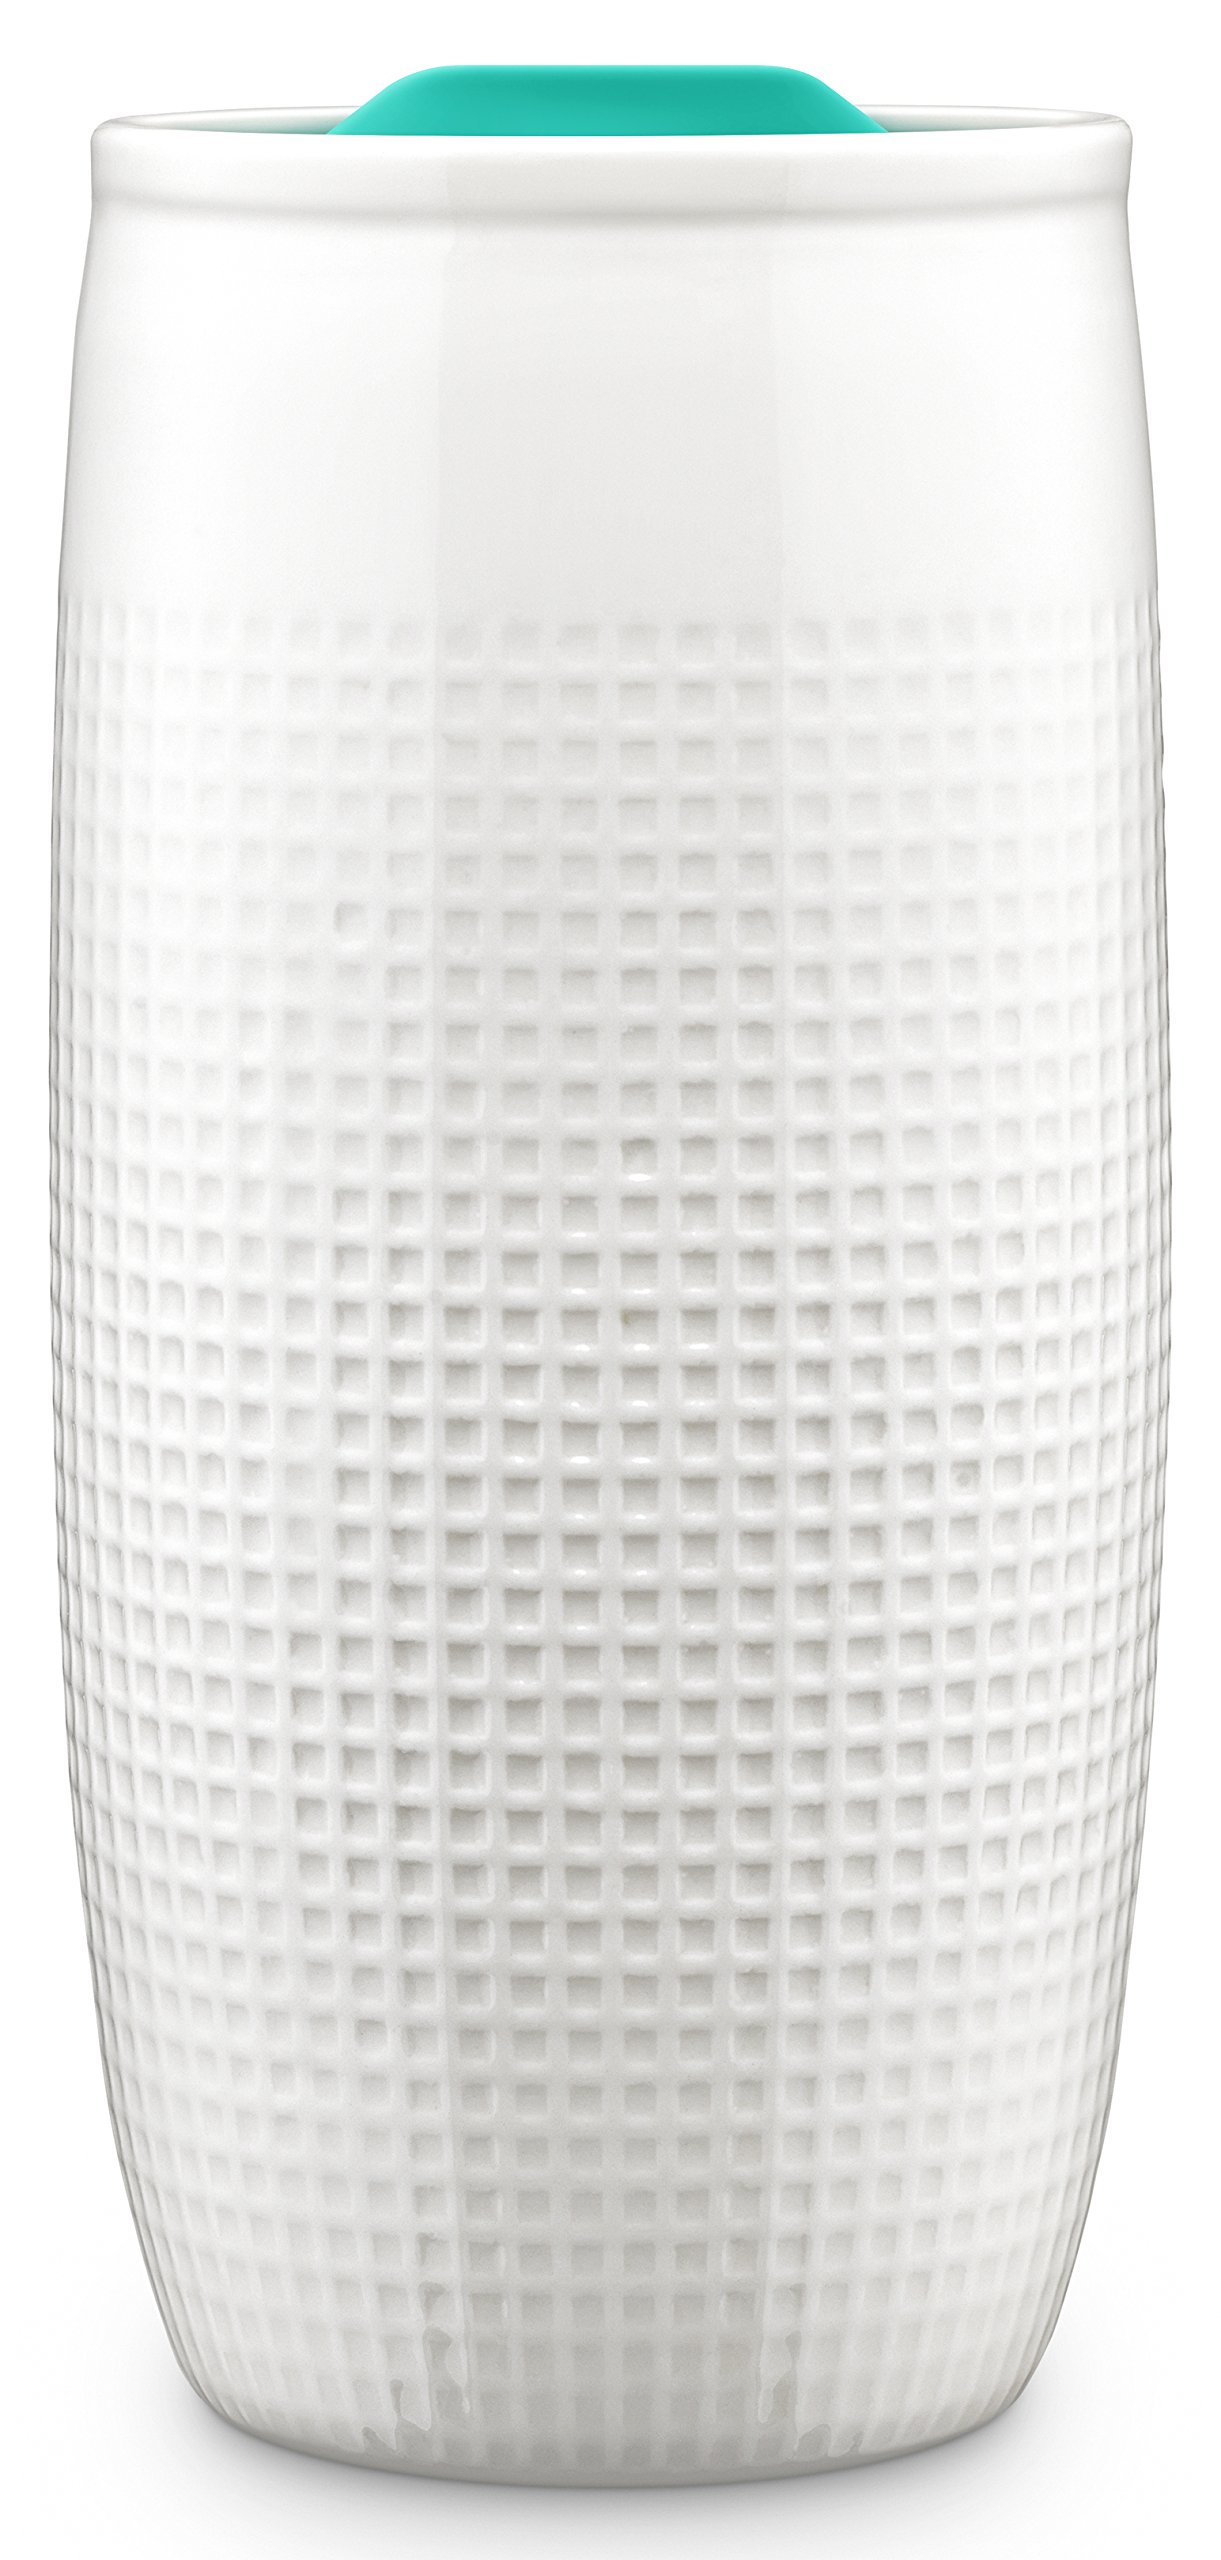 Ello Mesa 14-Ounce Double Wall BPA-Free Ceramic Tumbler with Lid, Teal 14 oz, Teal